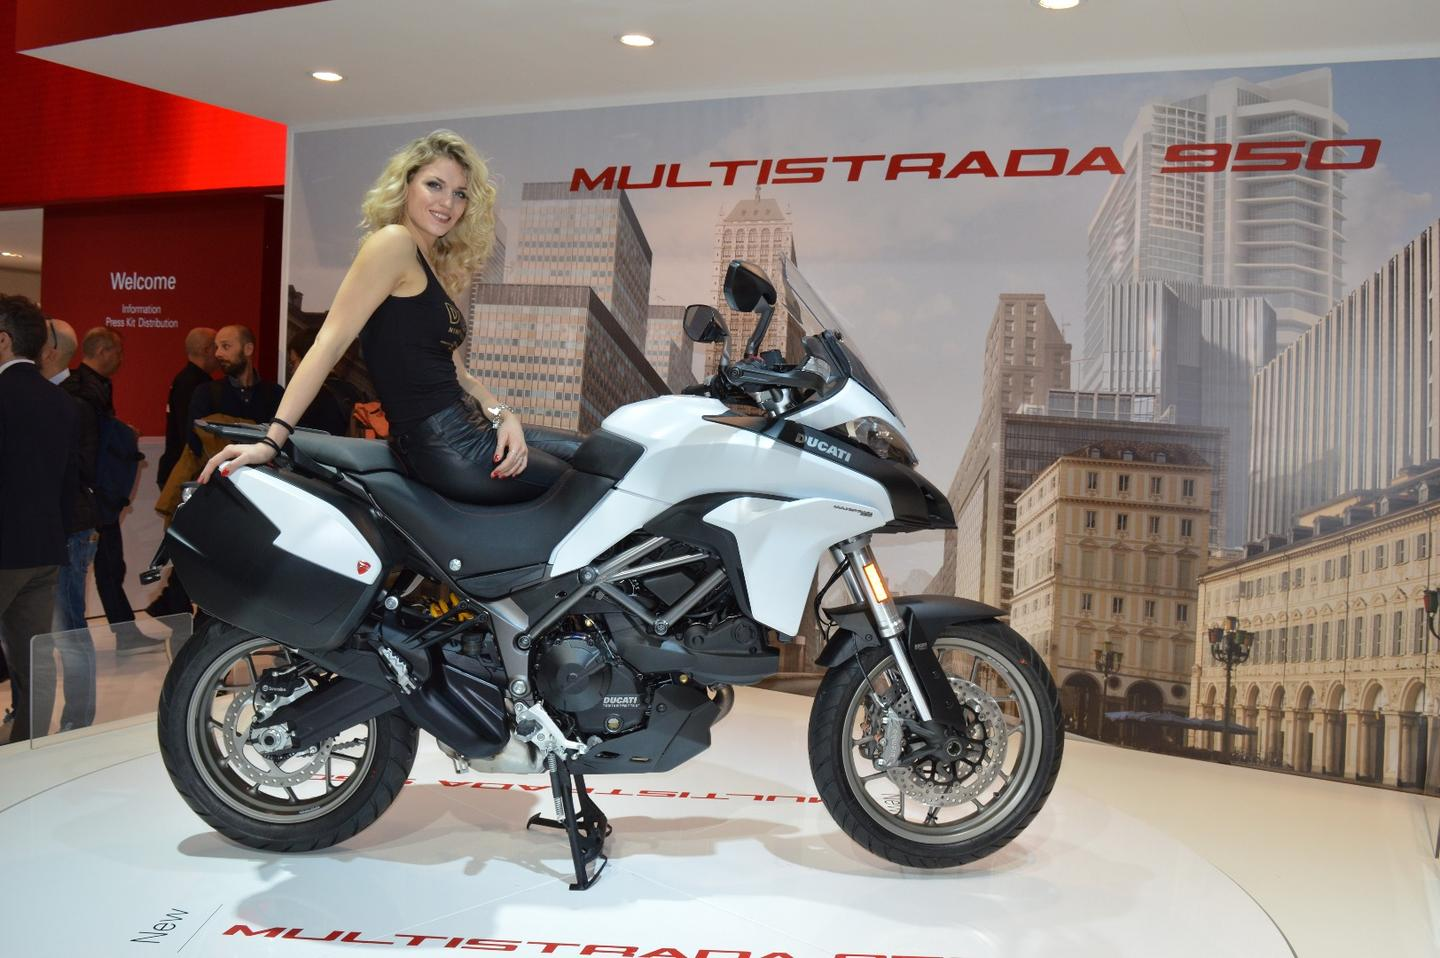 The Multistrada 950 on display at EICMA 2016